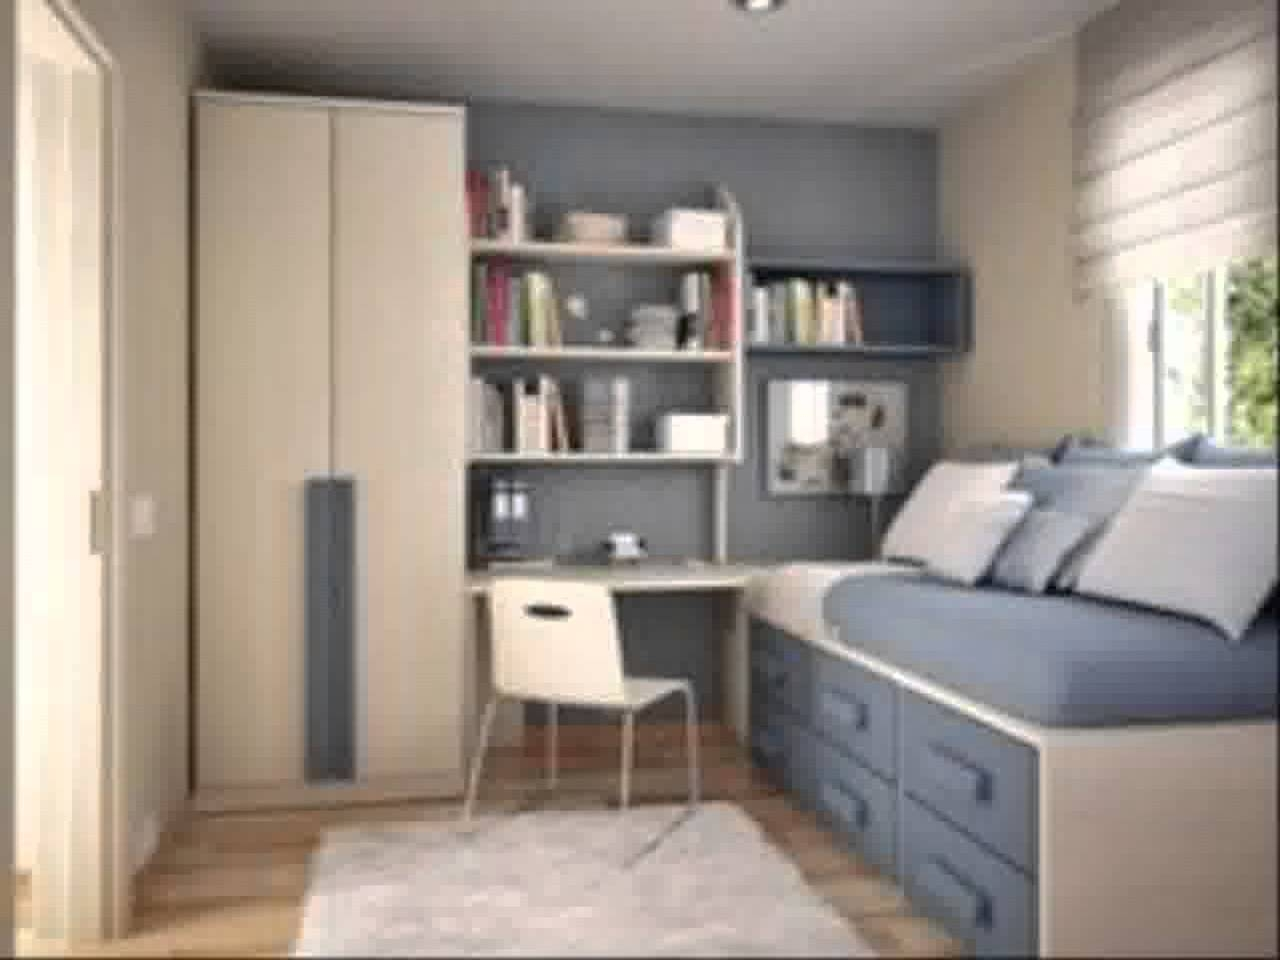 Bedroom Cabinets Image Via Wwwolxin Interior Bedroom Furniture Intended For Study Cupboard Designs (View 7 of 15)